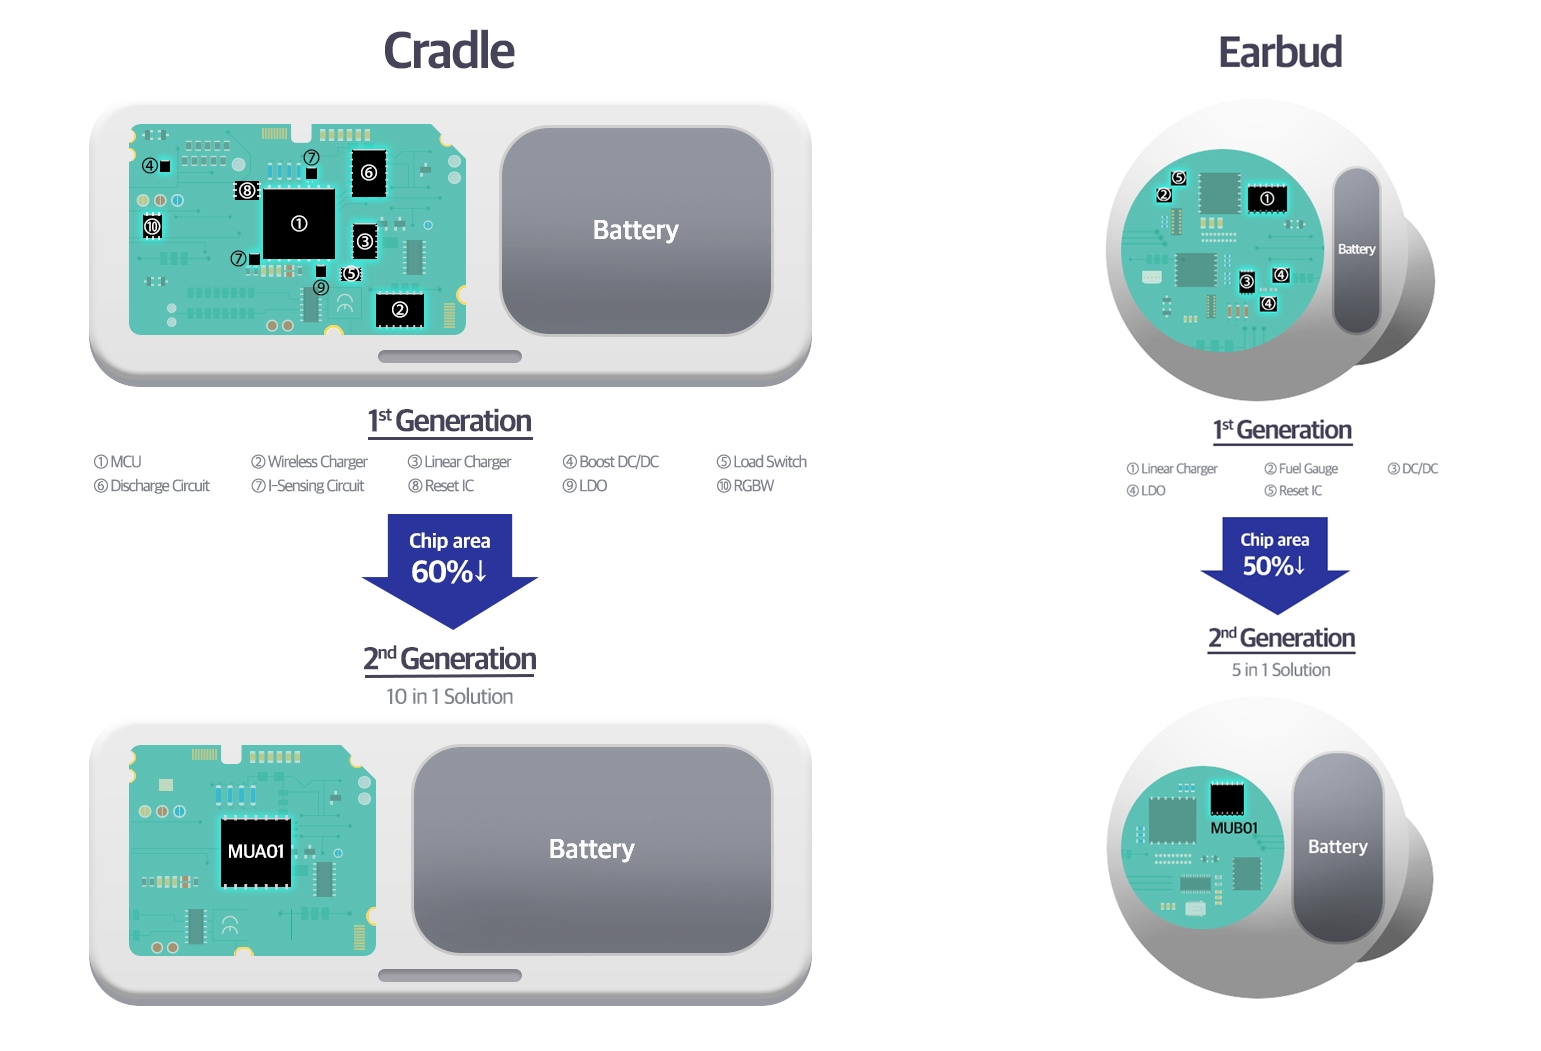 Samsung MUA01 MUB01 All In One Power Management IC Infographic